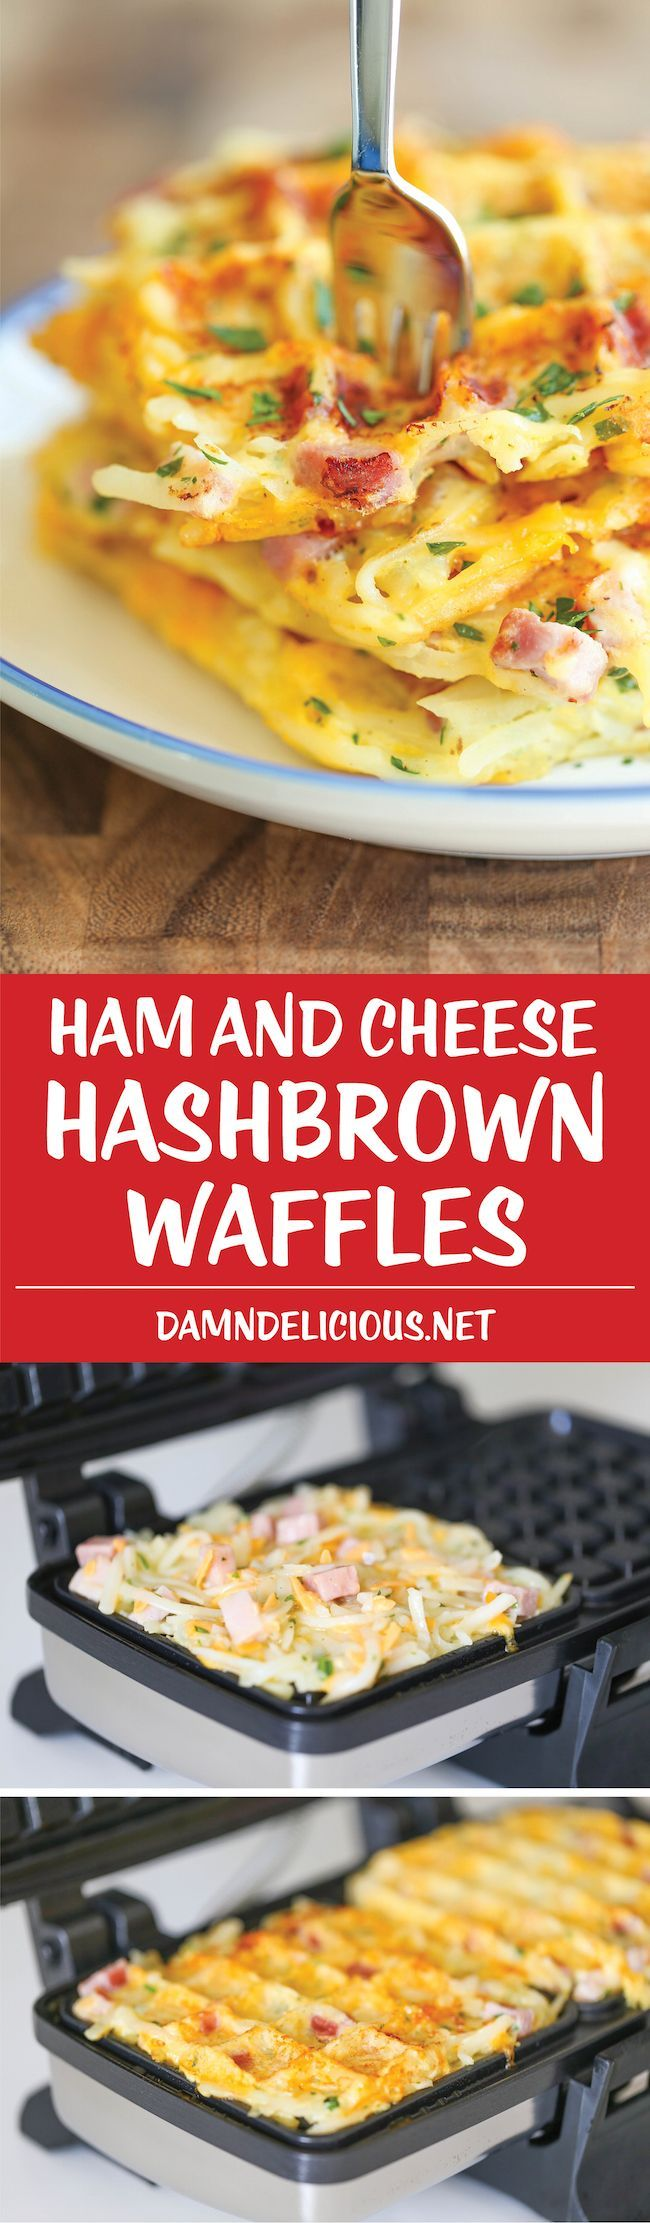 Ham and Cheese Hashbrown Waffles - Crunchy, yet silky smooth hashbrowns made right in the waffle iron. So quick, so easy, and just so darn good!